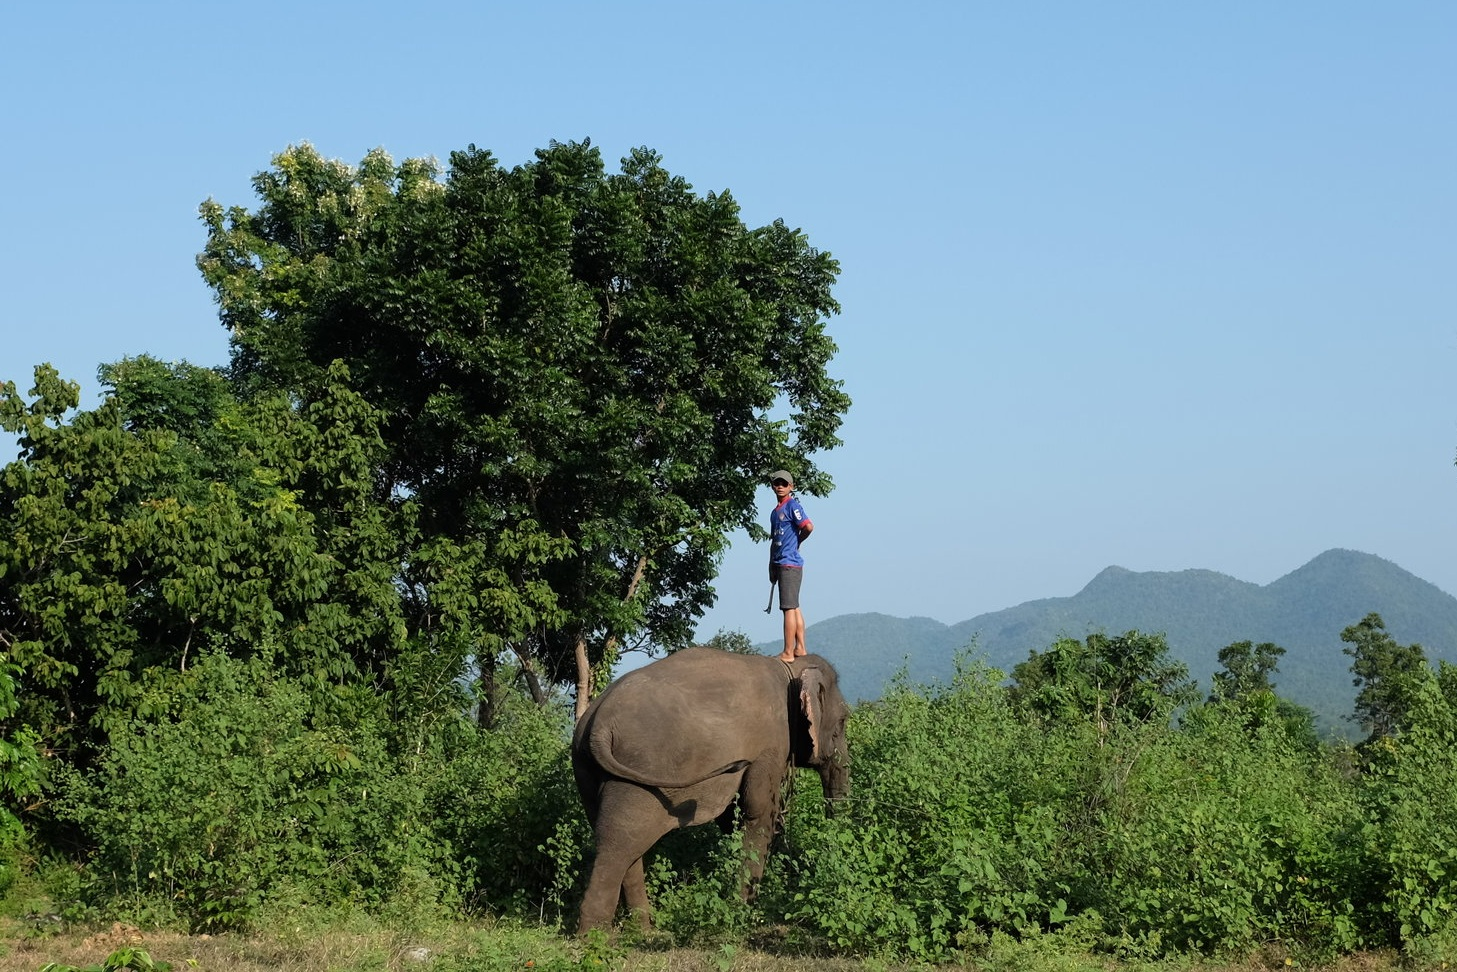 A mahout stands on his elephant's back to look over the thick forest brush.